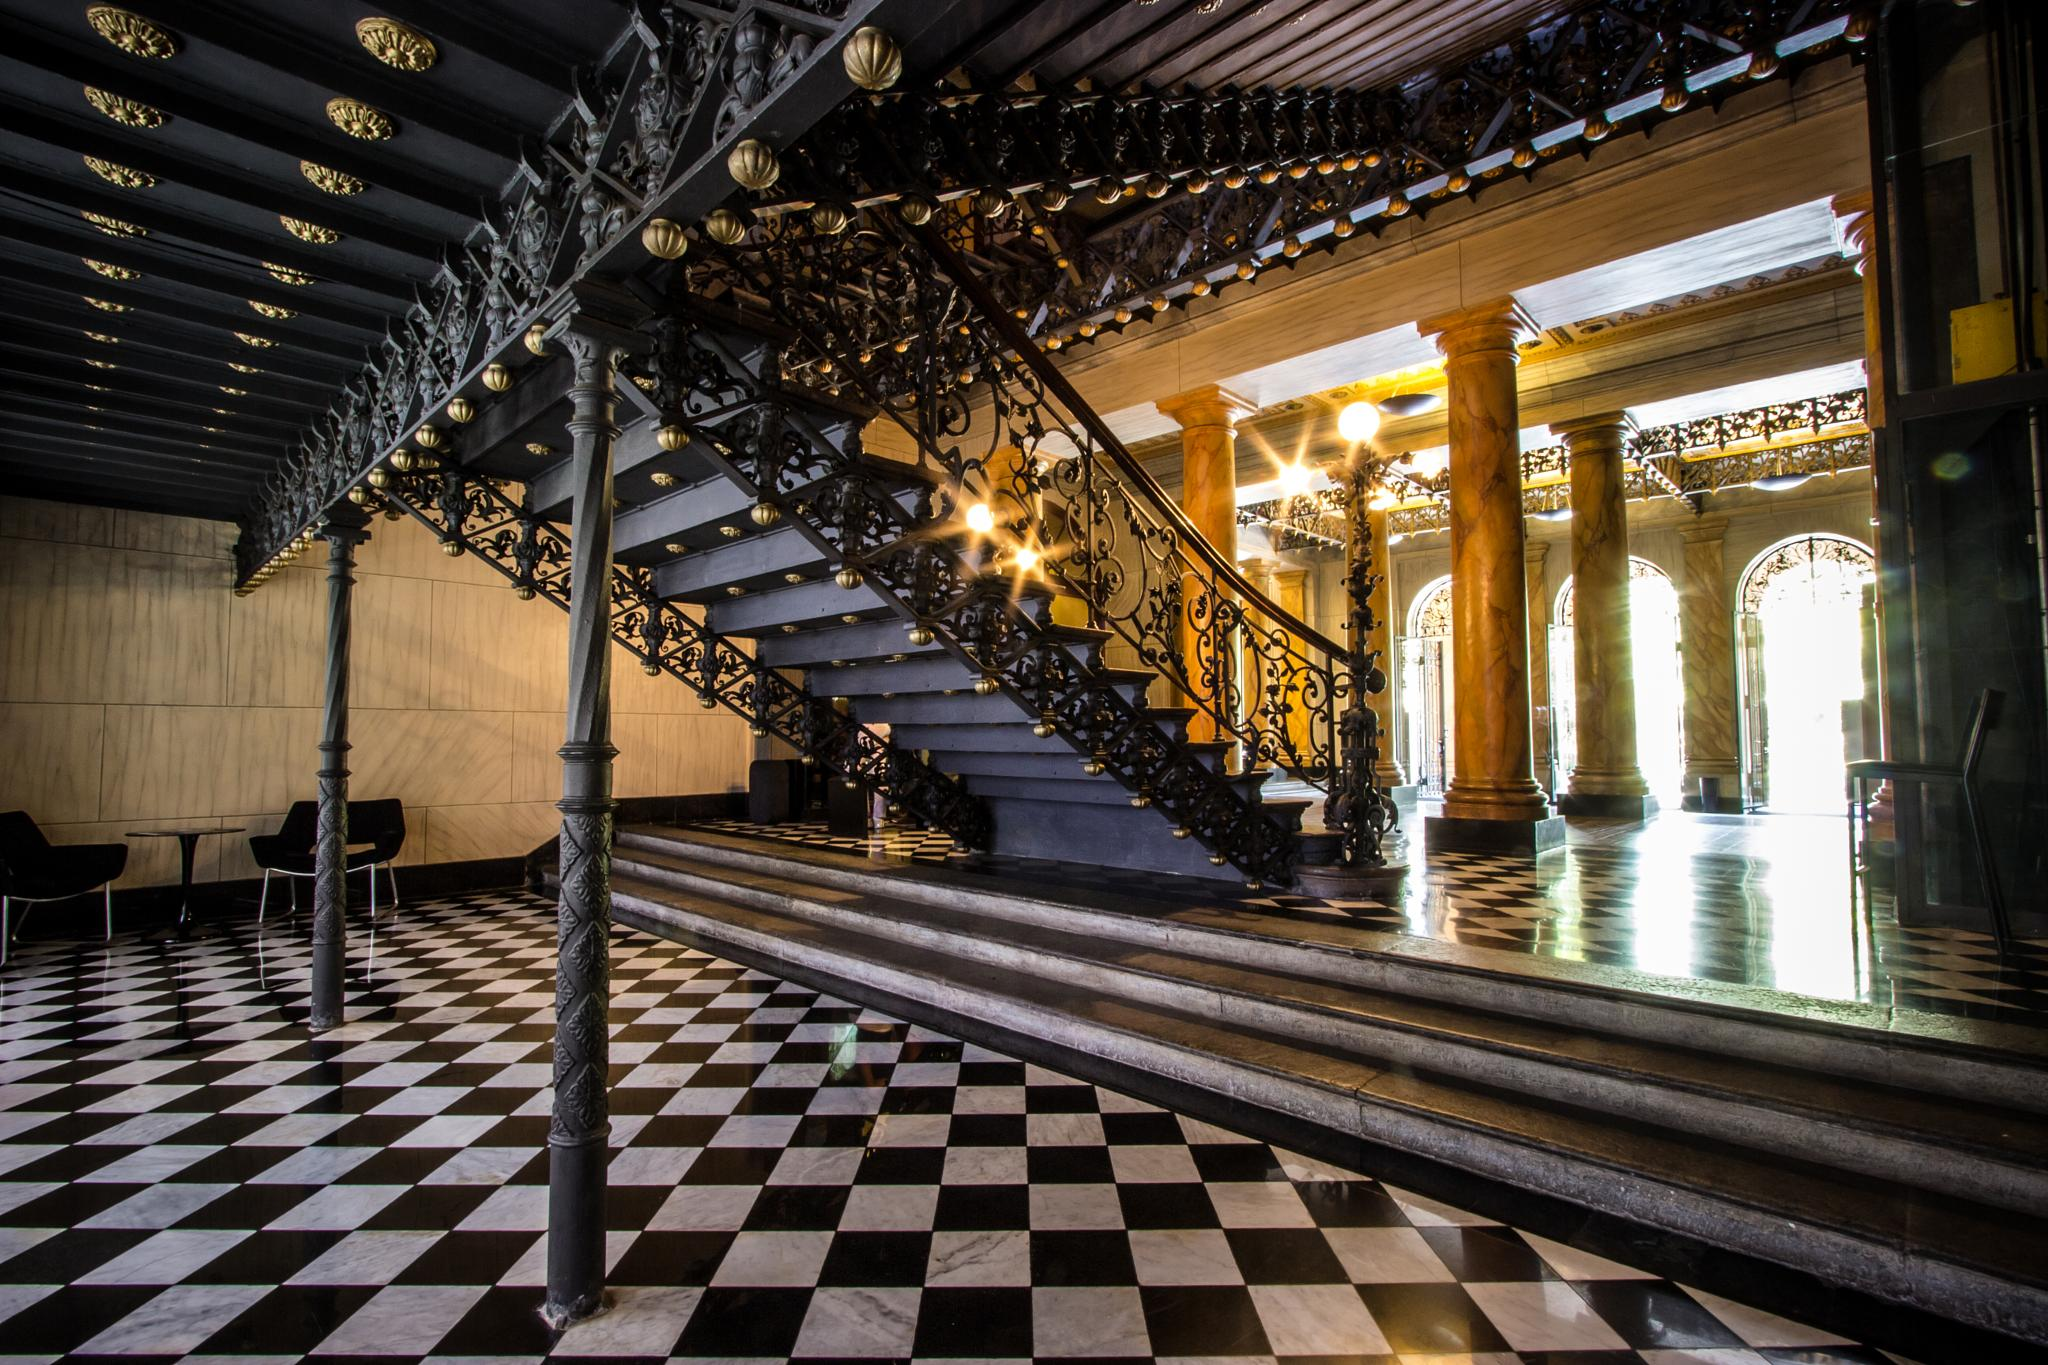 HALL AND FRENCH STAIR (1800's) by dudafrancischelli